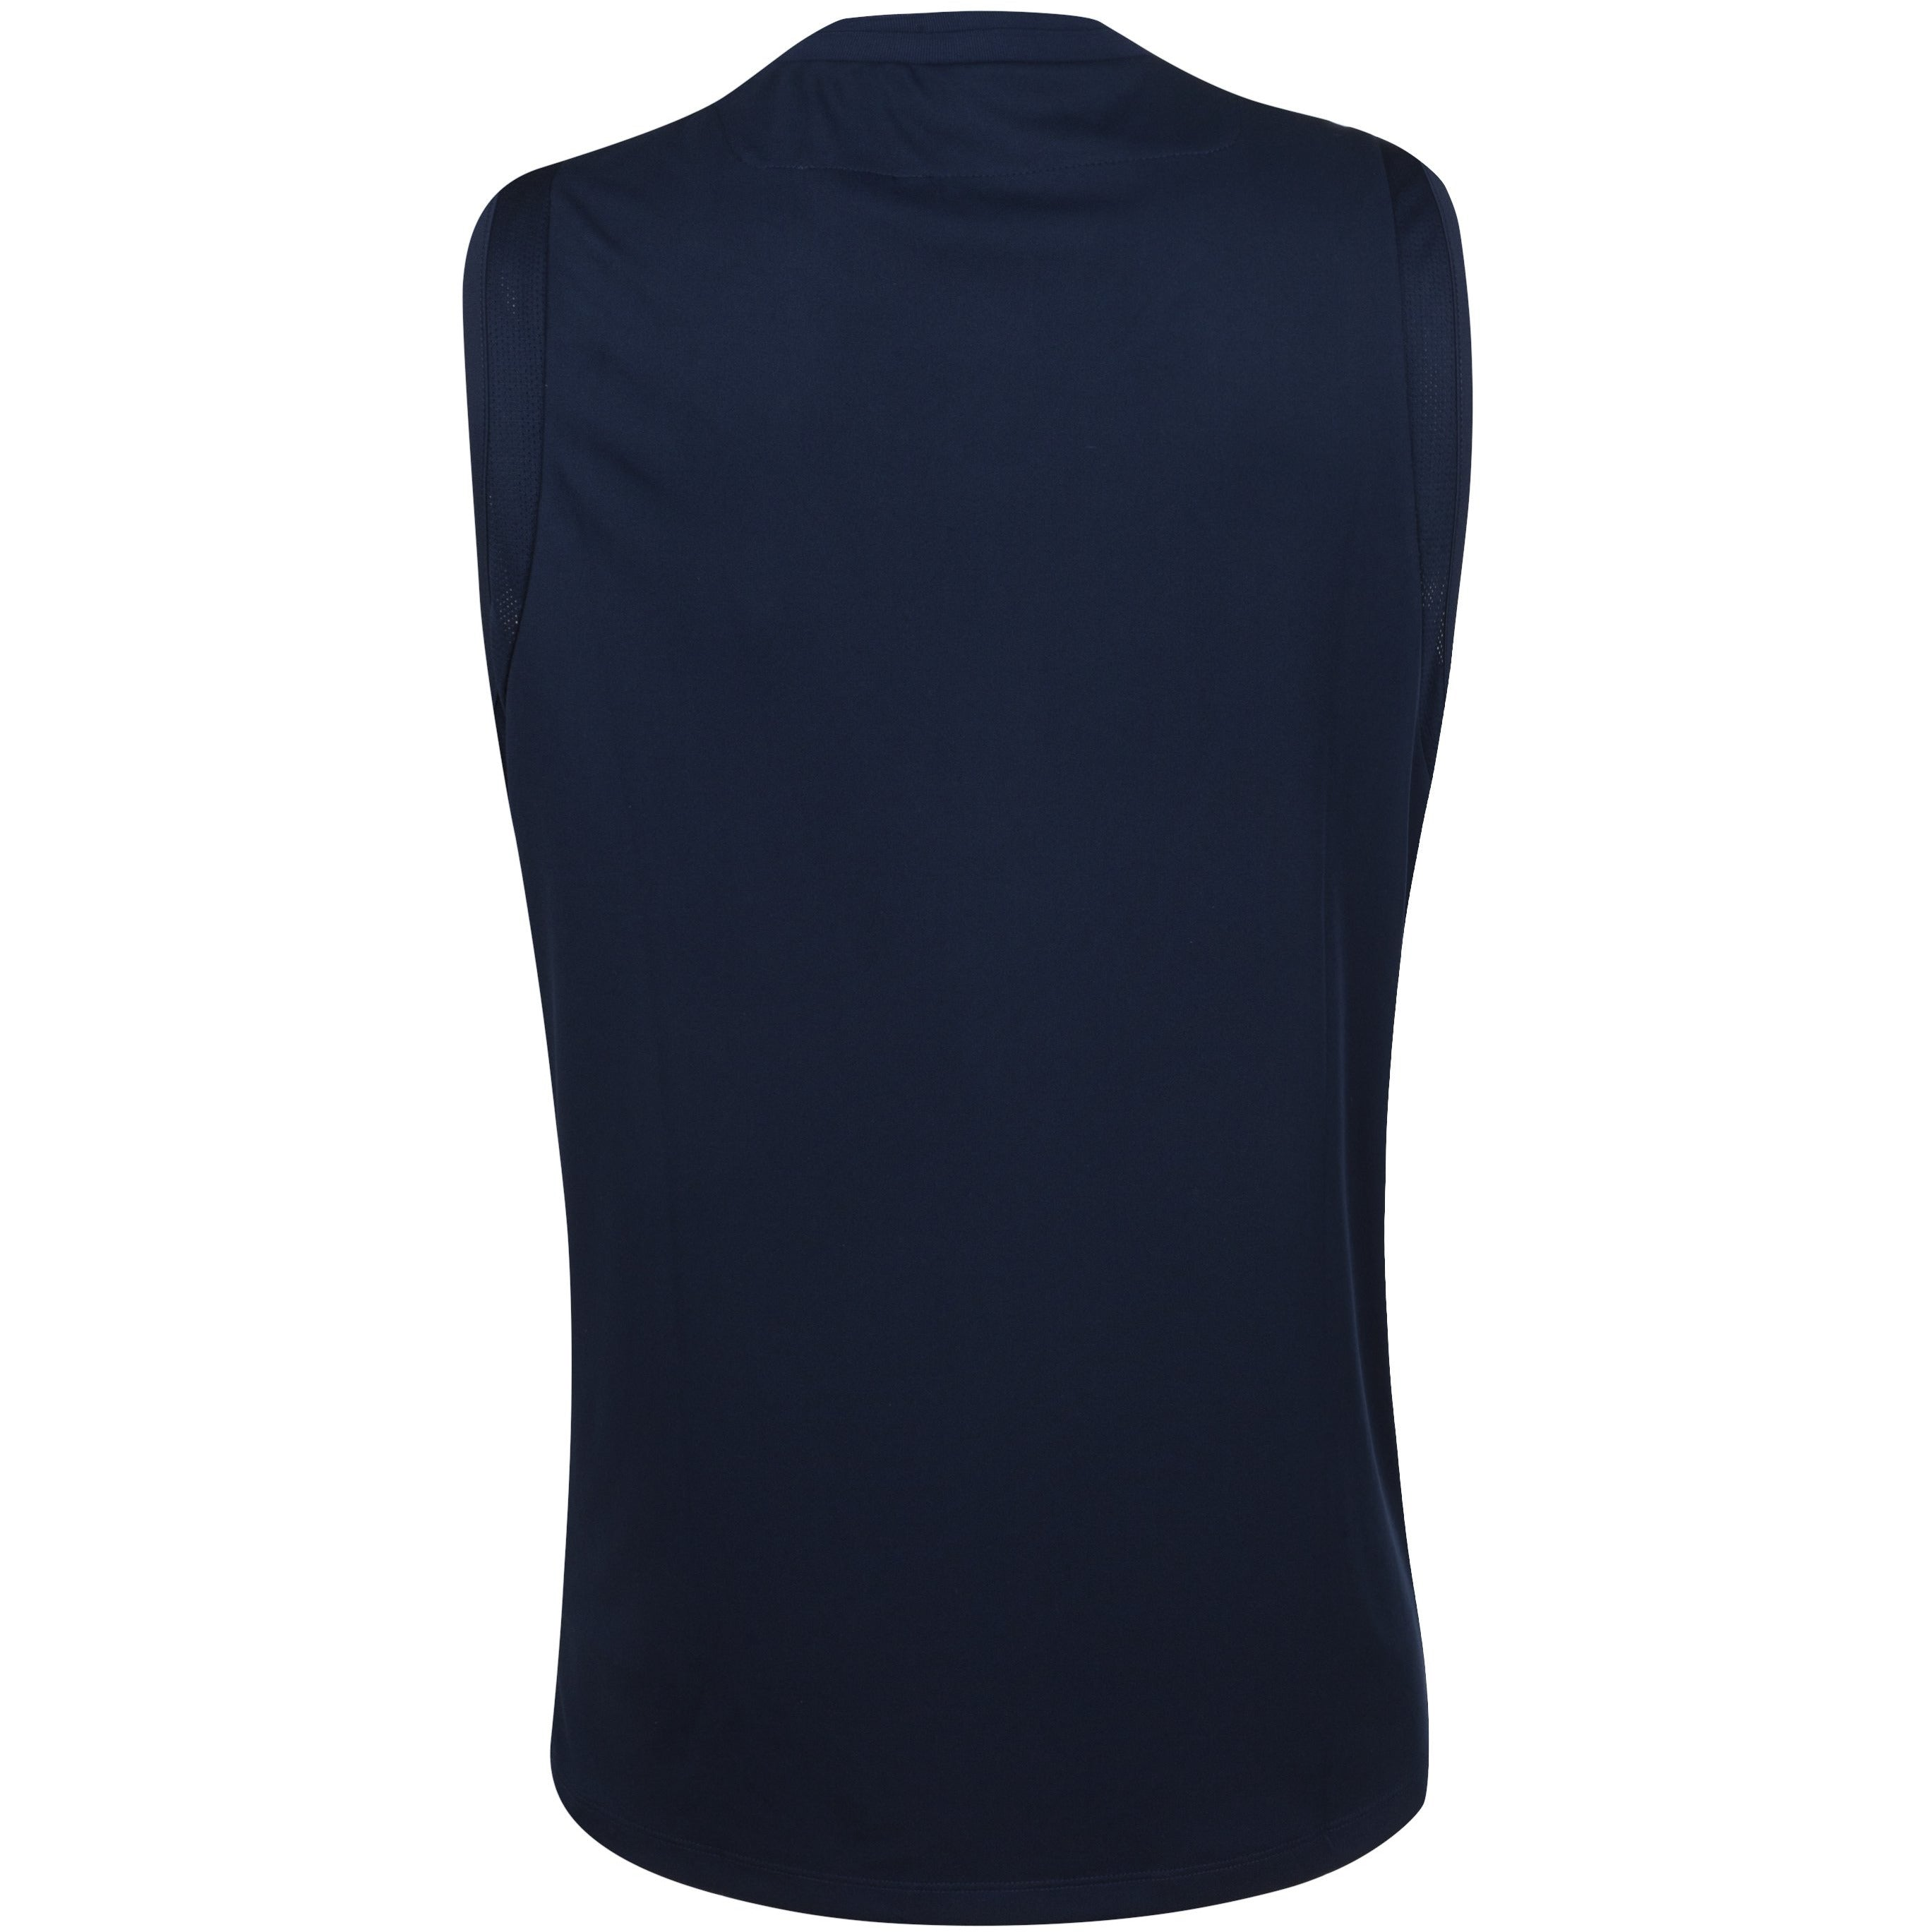 20/21 Training Sleeveless T-Shirt Junior